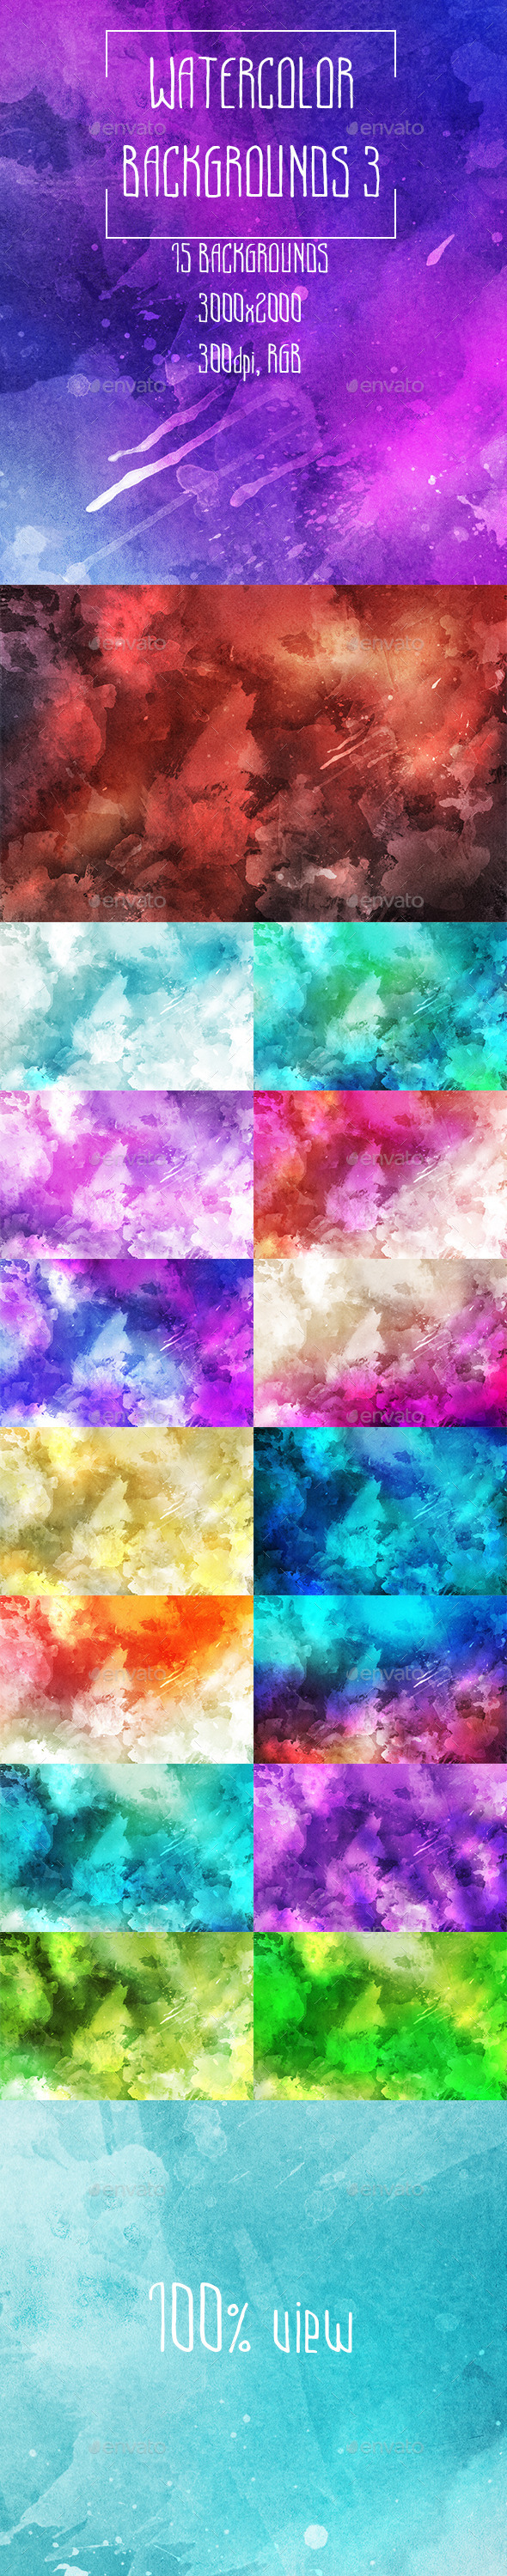 Watercolor Backgrounds 3 - Abstract Backgrounds